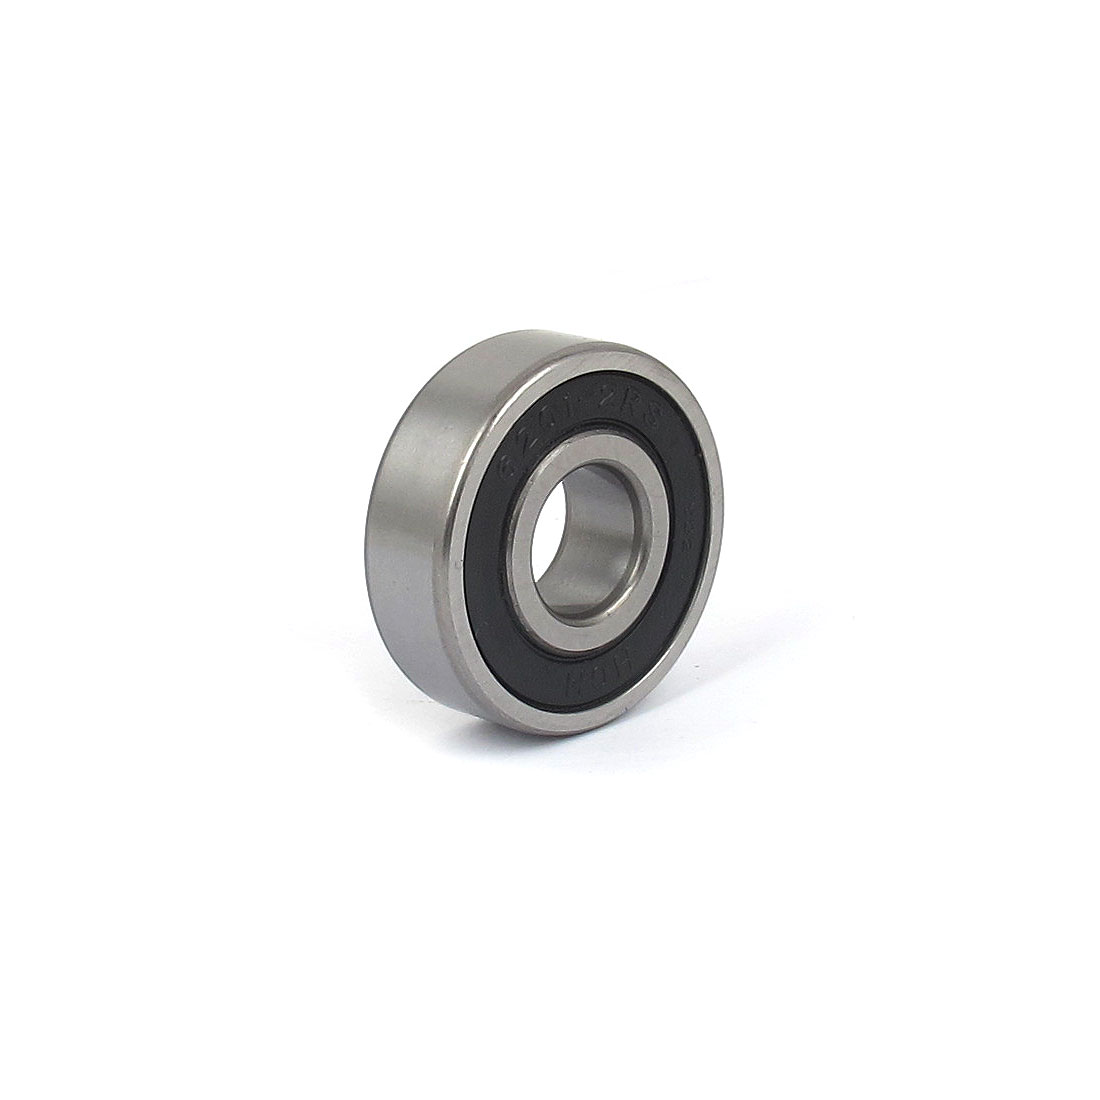 6201-2RS 12mmx32mmx10mm Dual Side Rubber Sealed Deep Groove Radial Ball Bearing